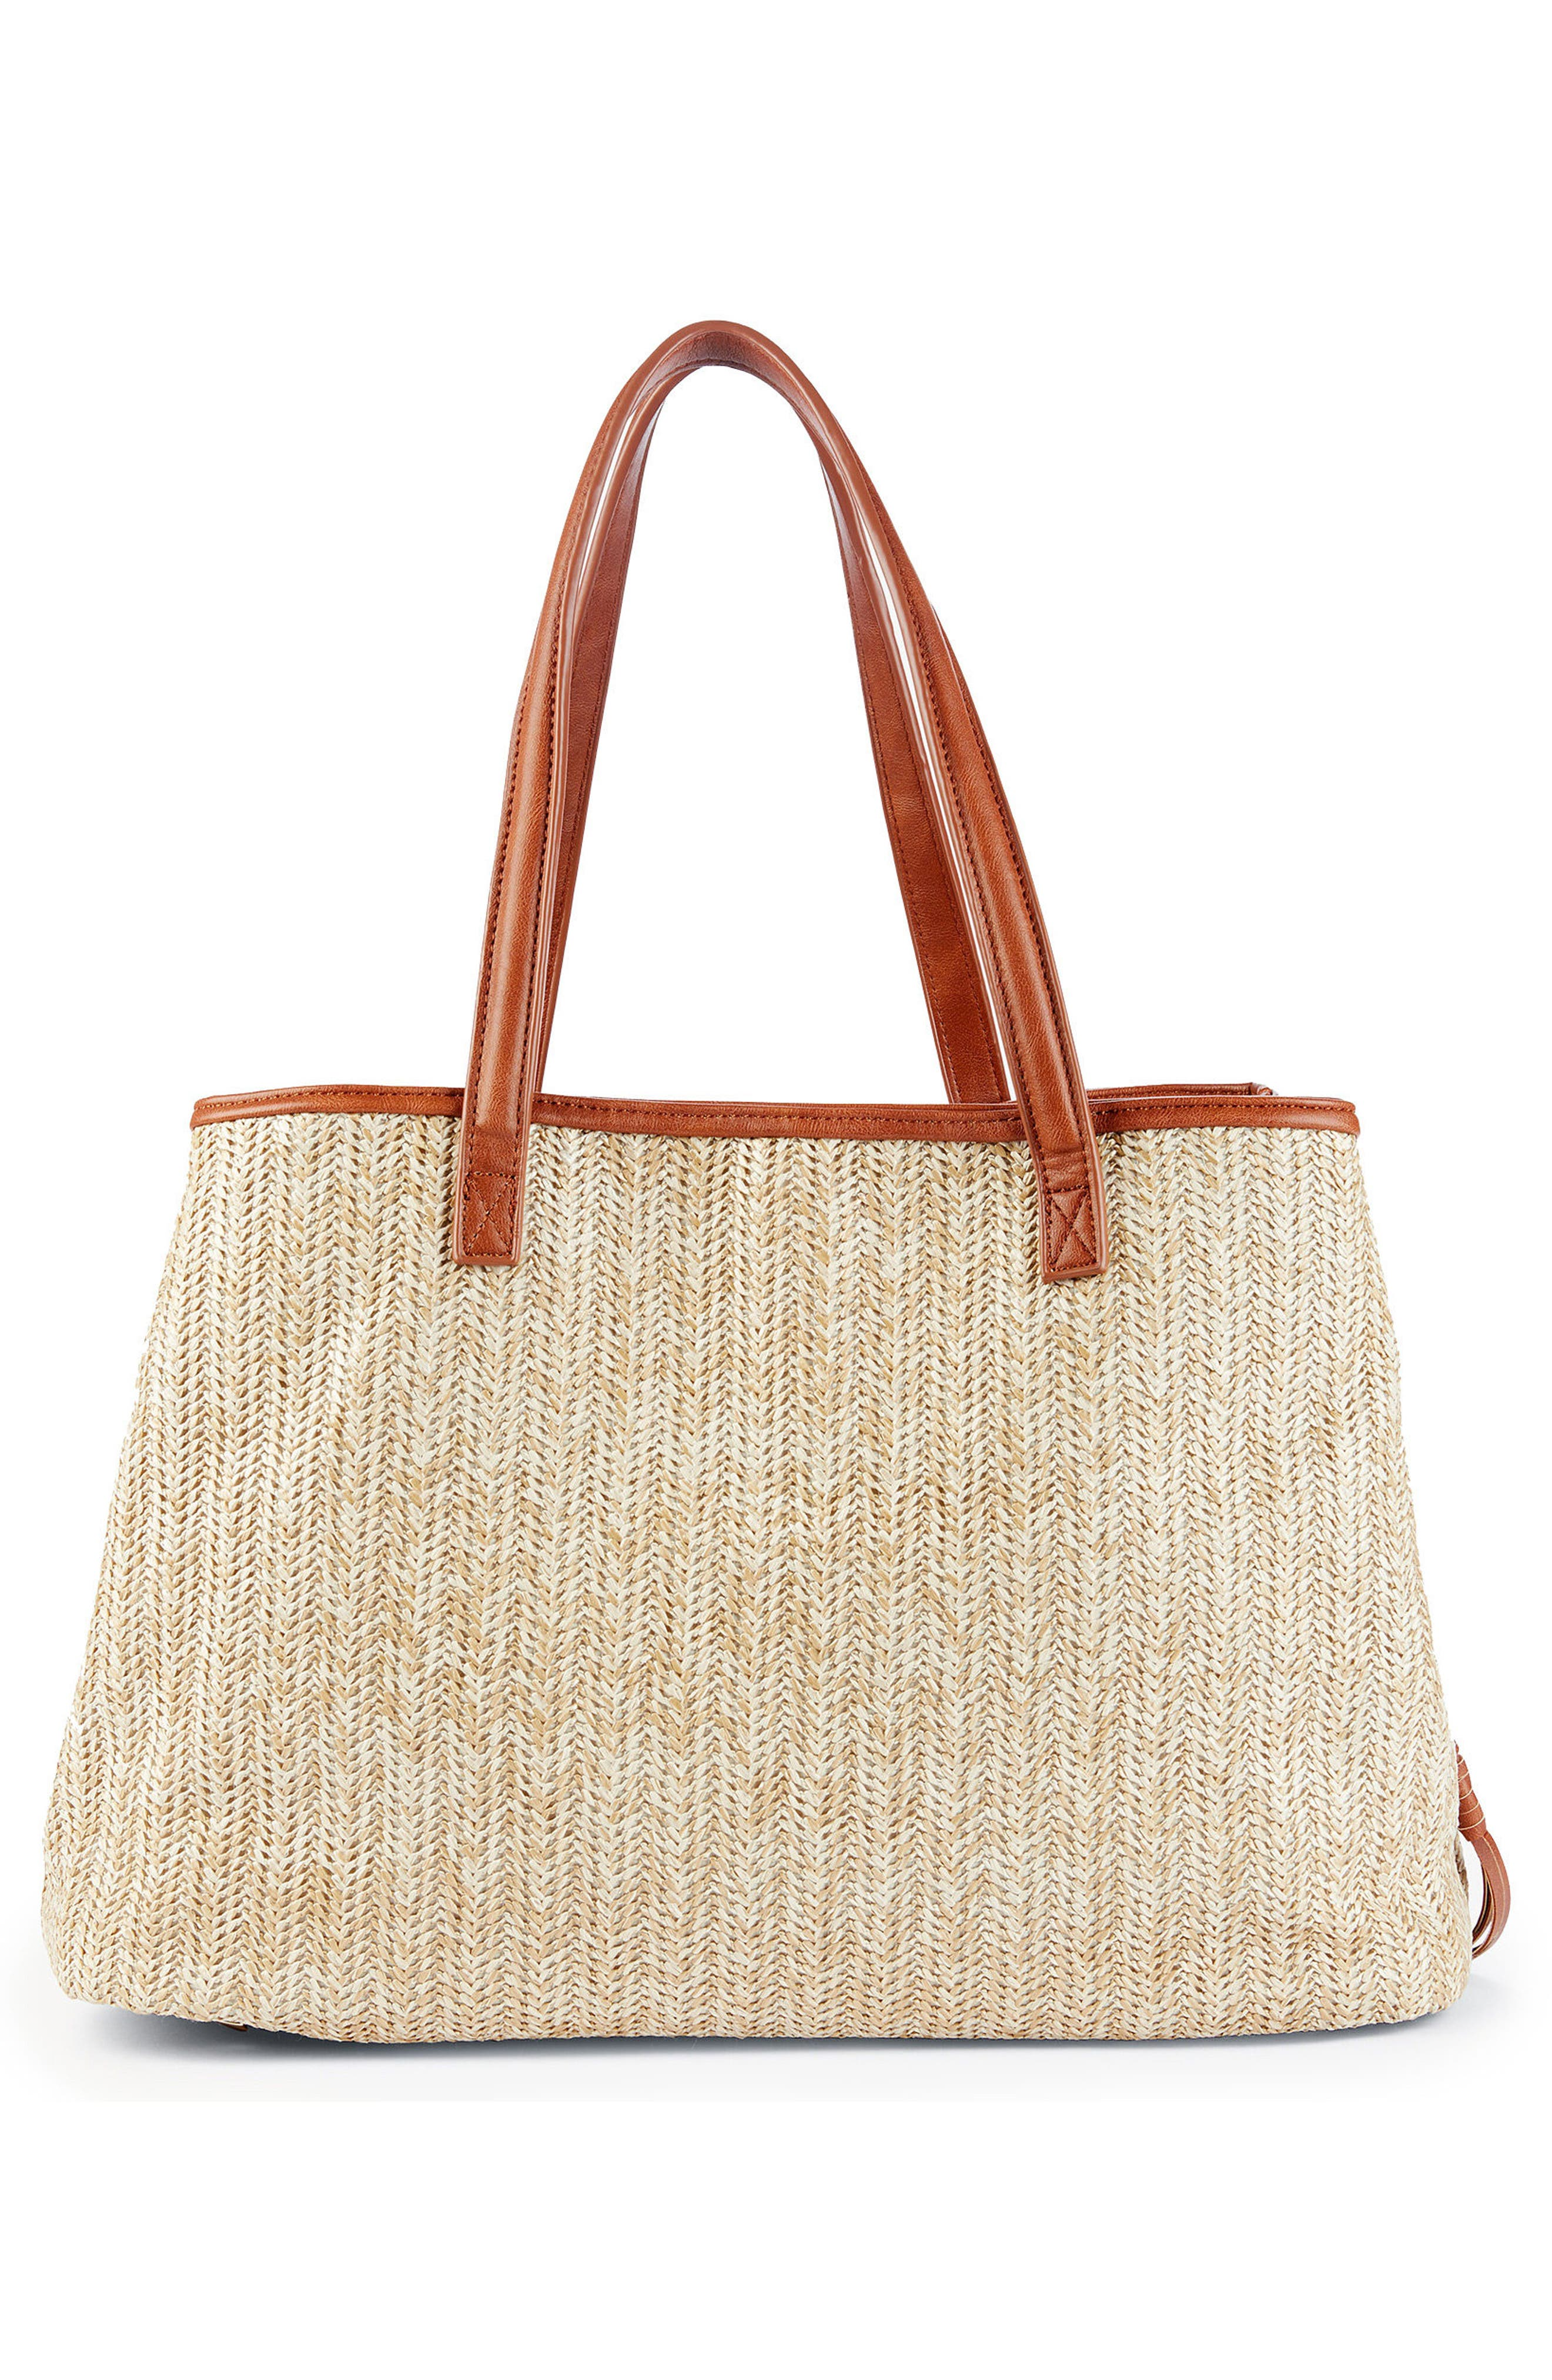 Pipper Faux Leather Tote,                             Alternate thumbnail 3, color,                             250